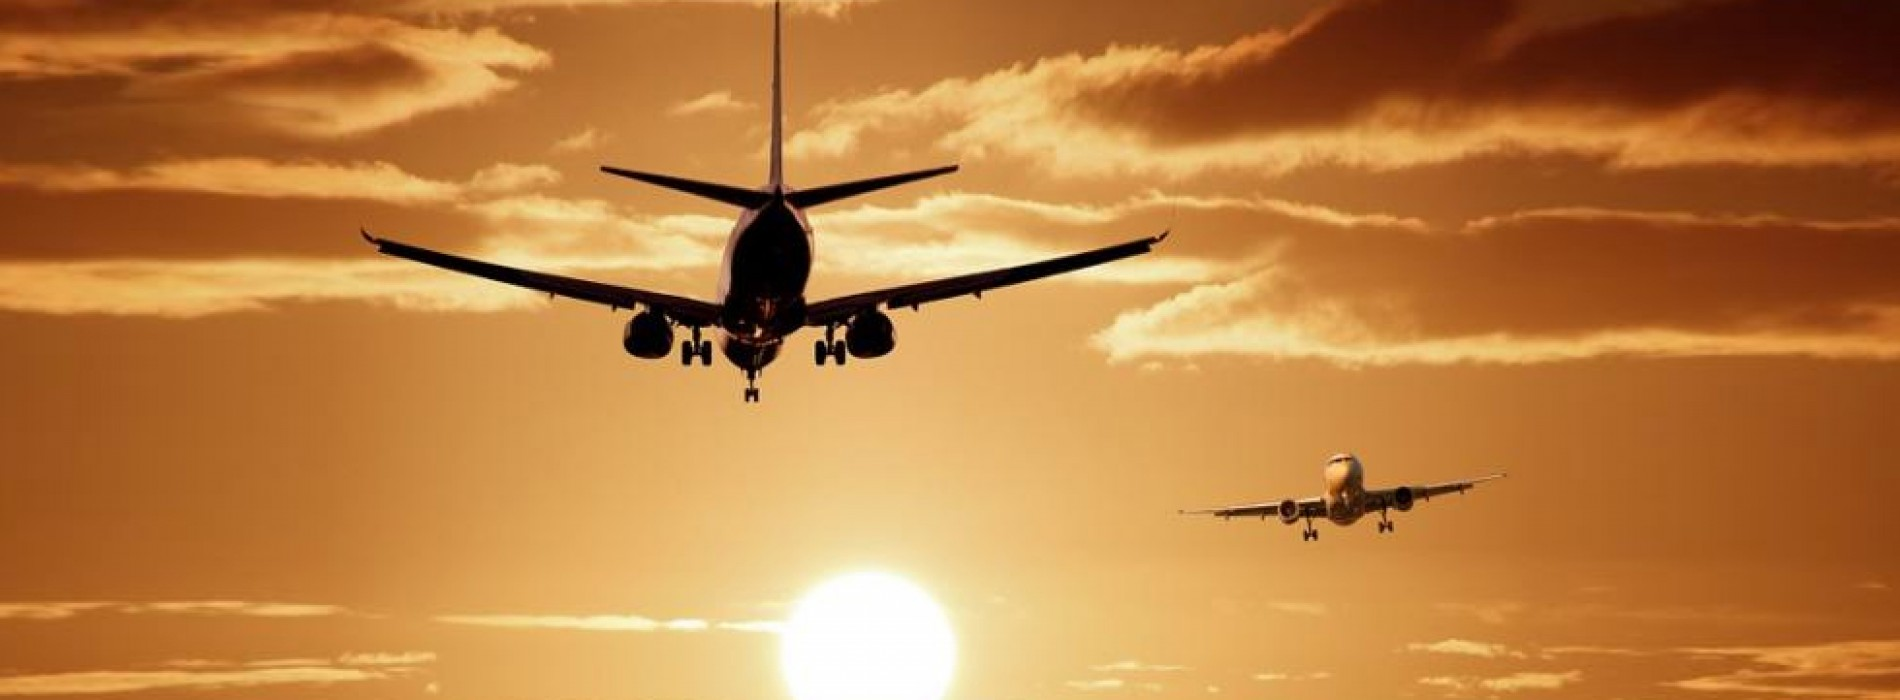 India's aviation sector is heading for a turbulent year